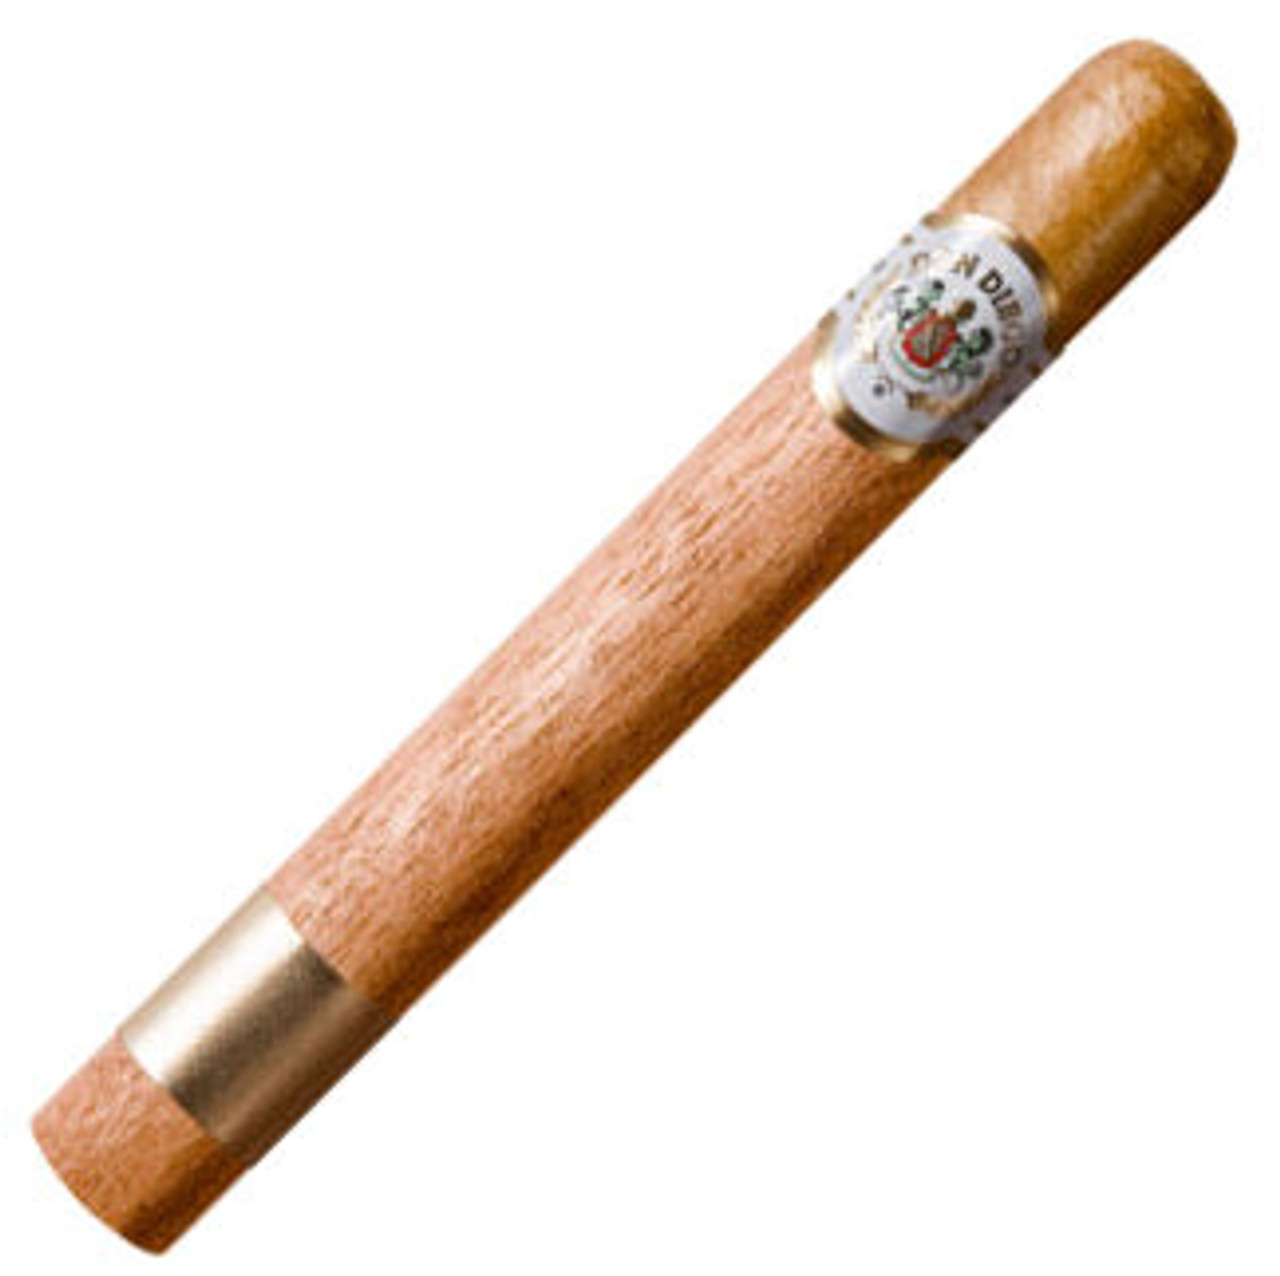 Don Diego Privada No. 4 Cigars - 5.62 x 42 (Pack of 5)